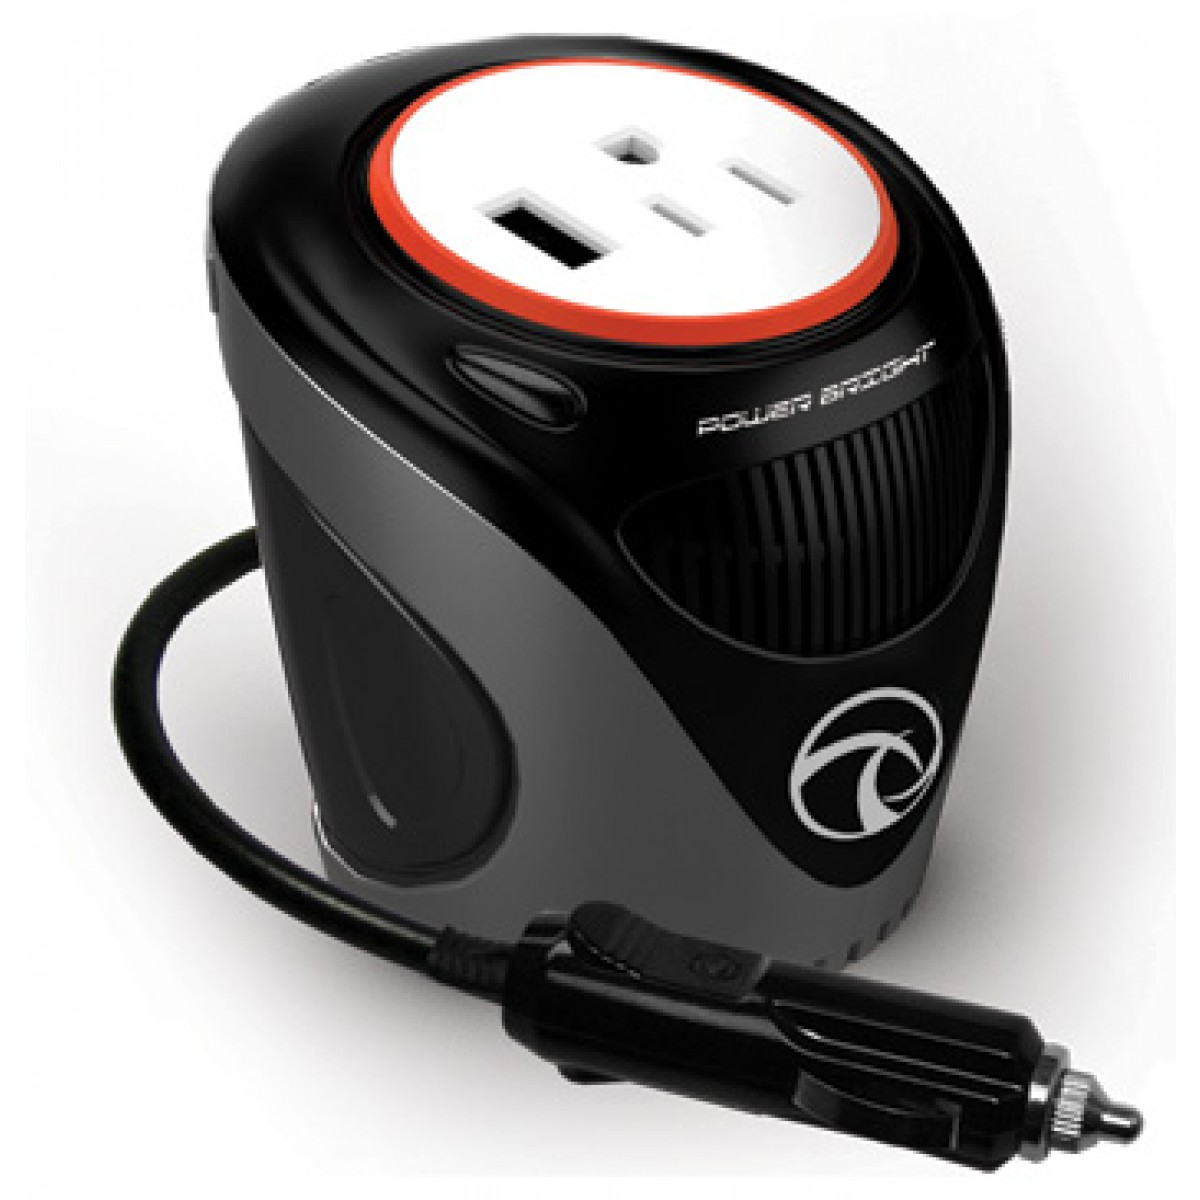 POWERBRIGHT 180 WATT CUP INVERTER FOR CAR + FREE SHIPPING